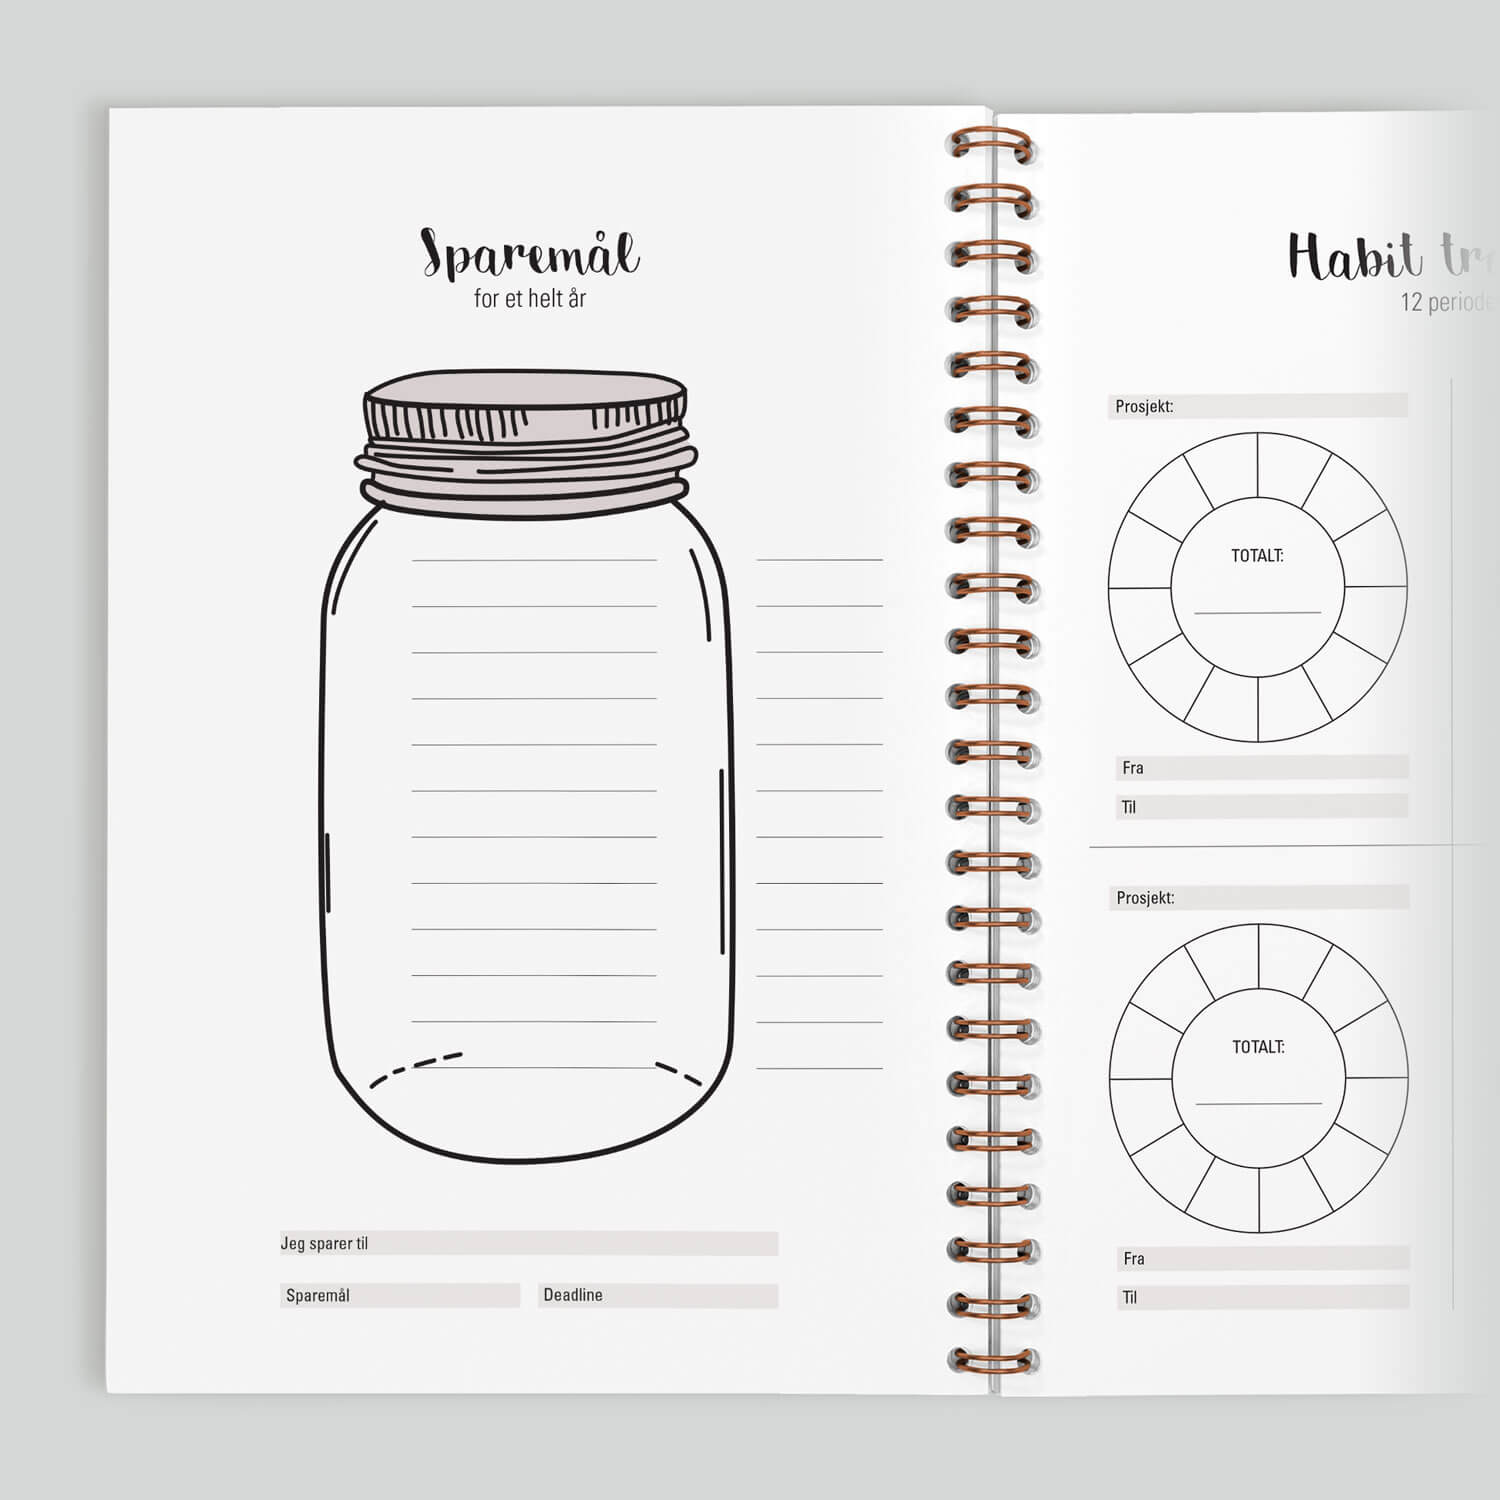 Make a change – sparemål og habit tracker